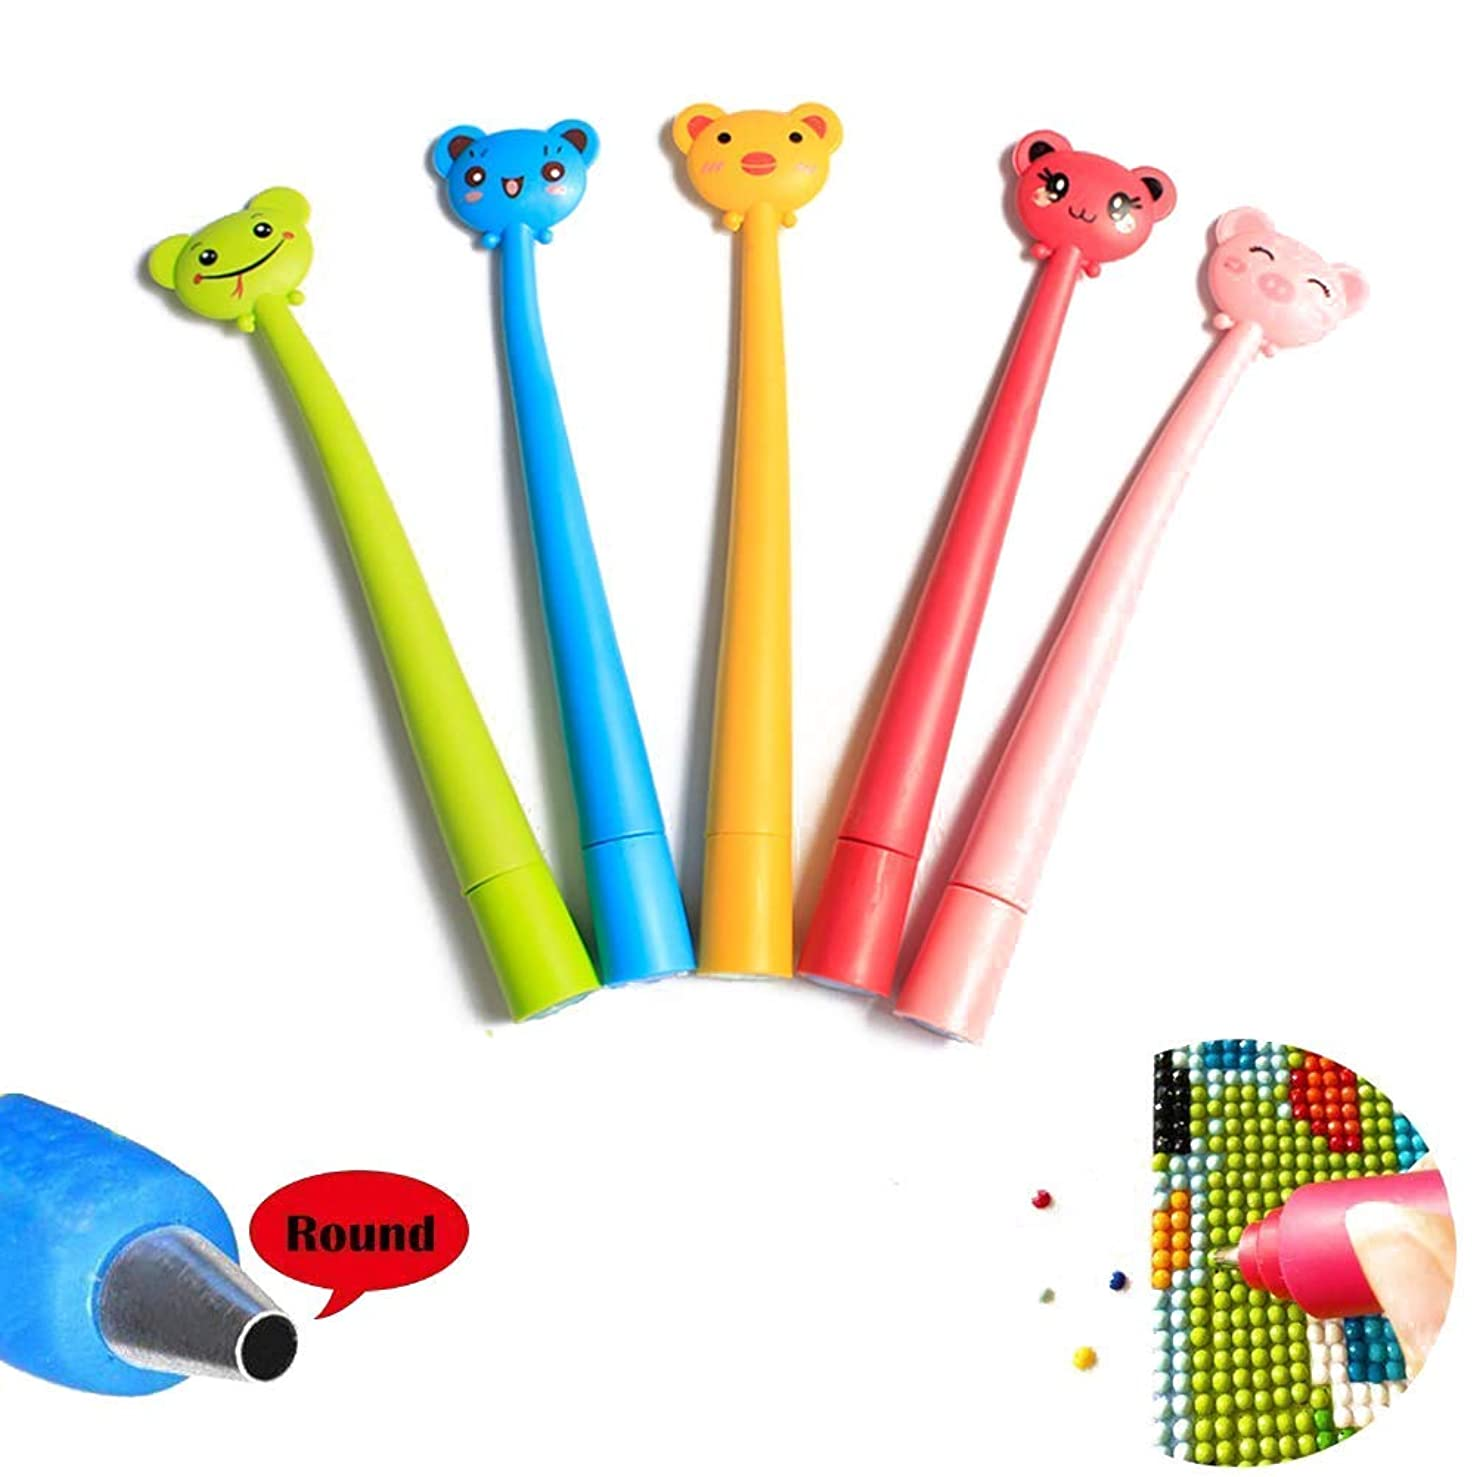 1 pc Diamond Painting Tool Point Drill Pen for Round Drill (Random Color)